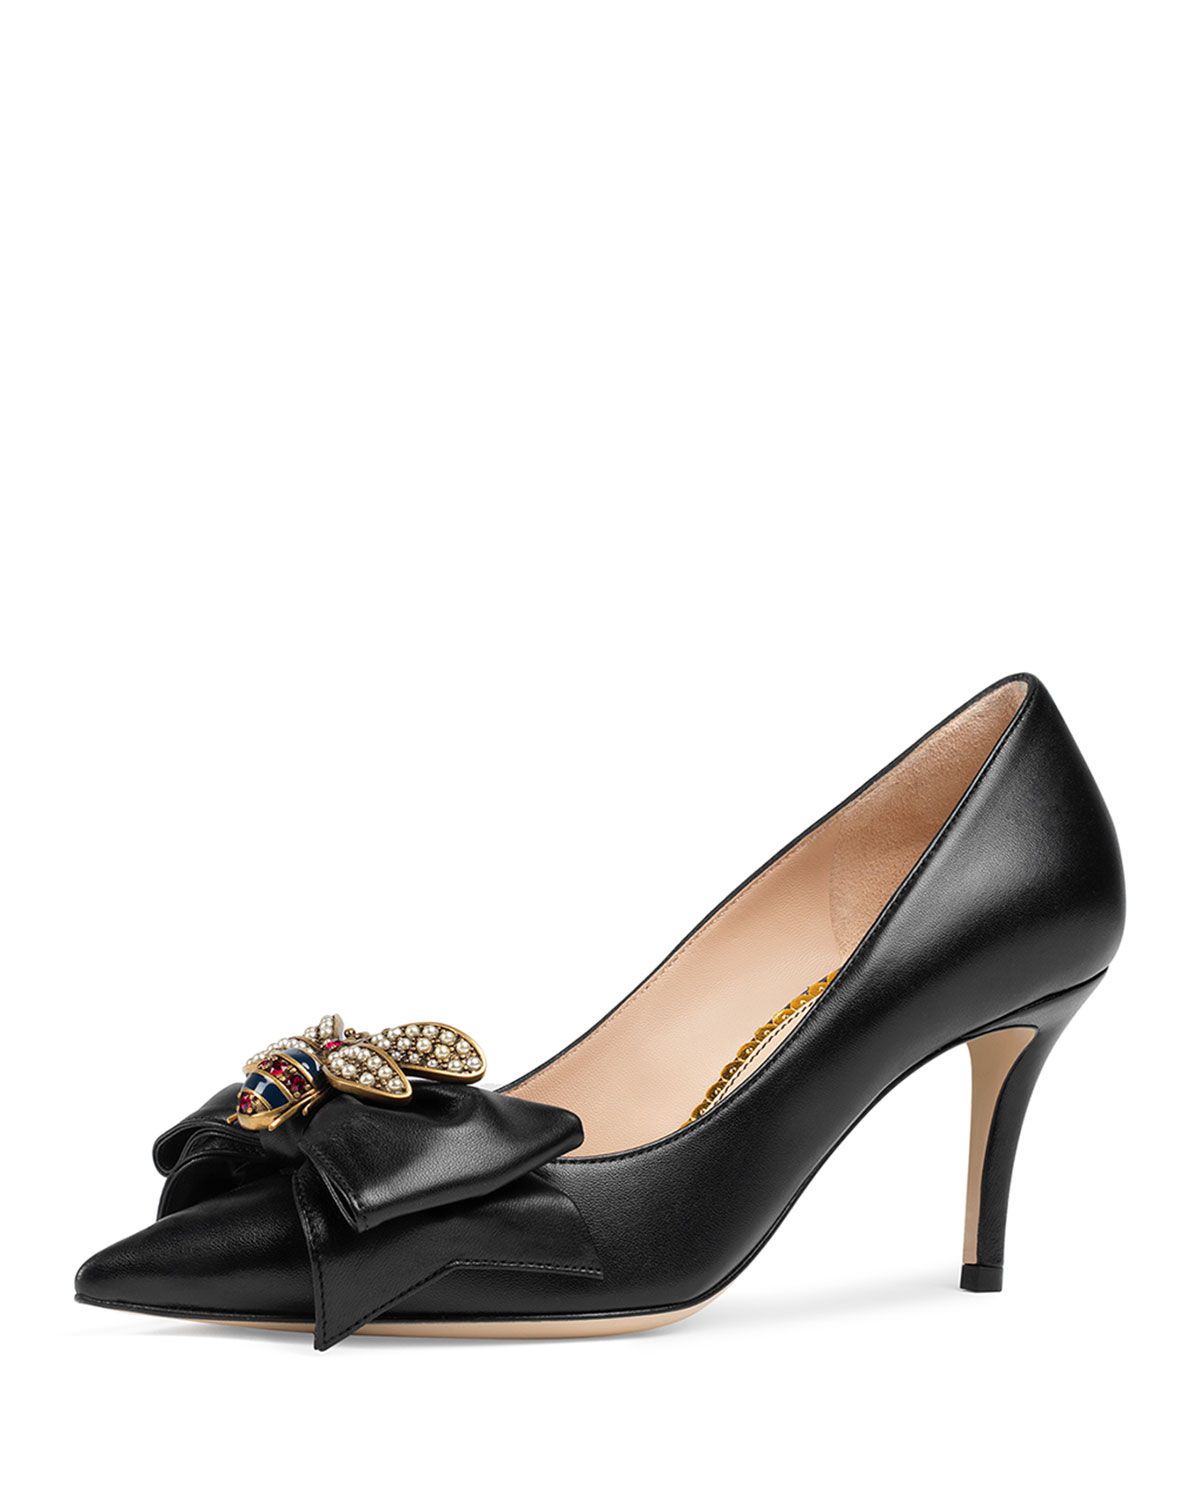 1a96ce900 Gucci 75mm Queen Margaret Leather Pump | Neiman Marcus